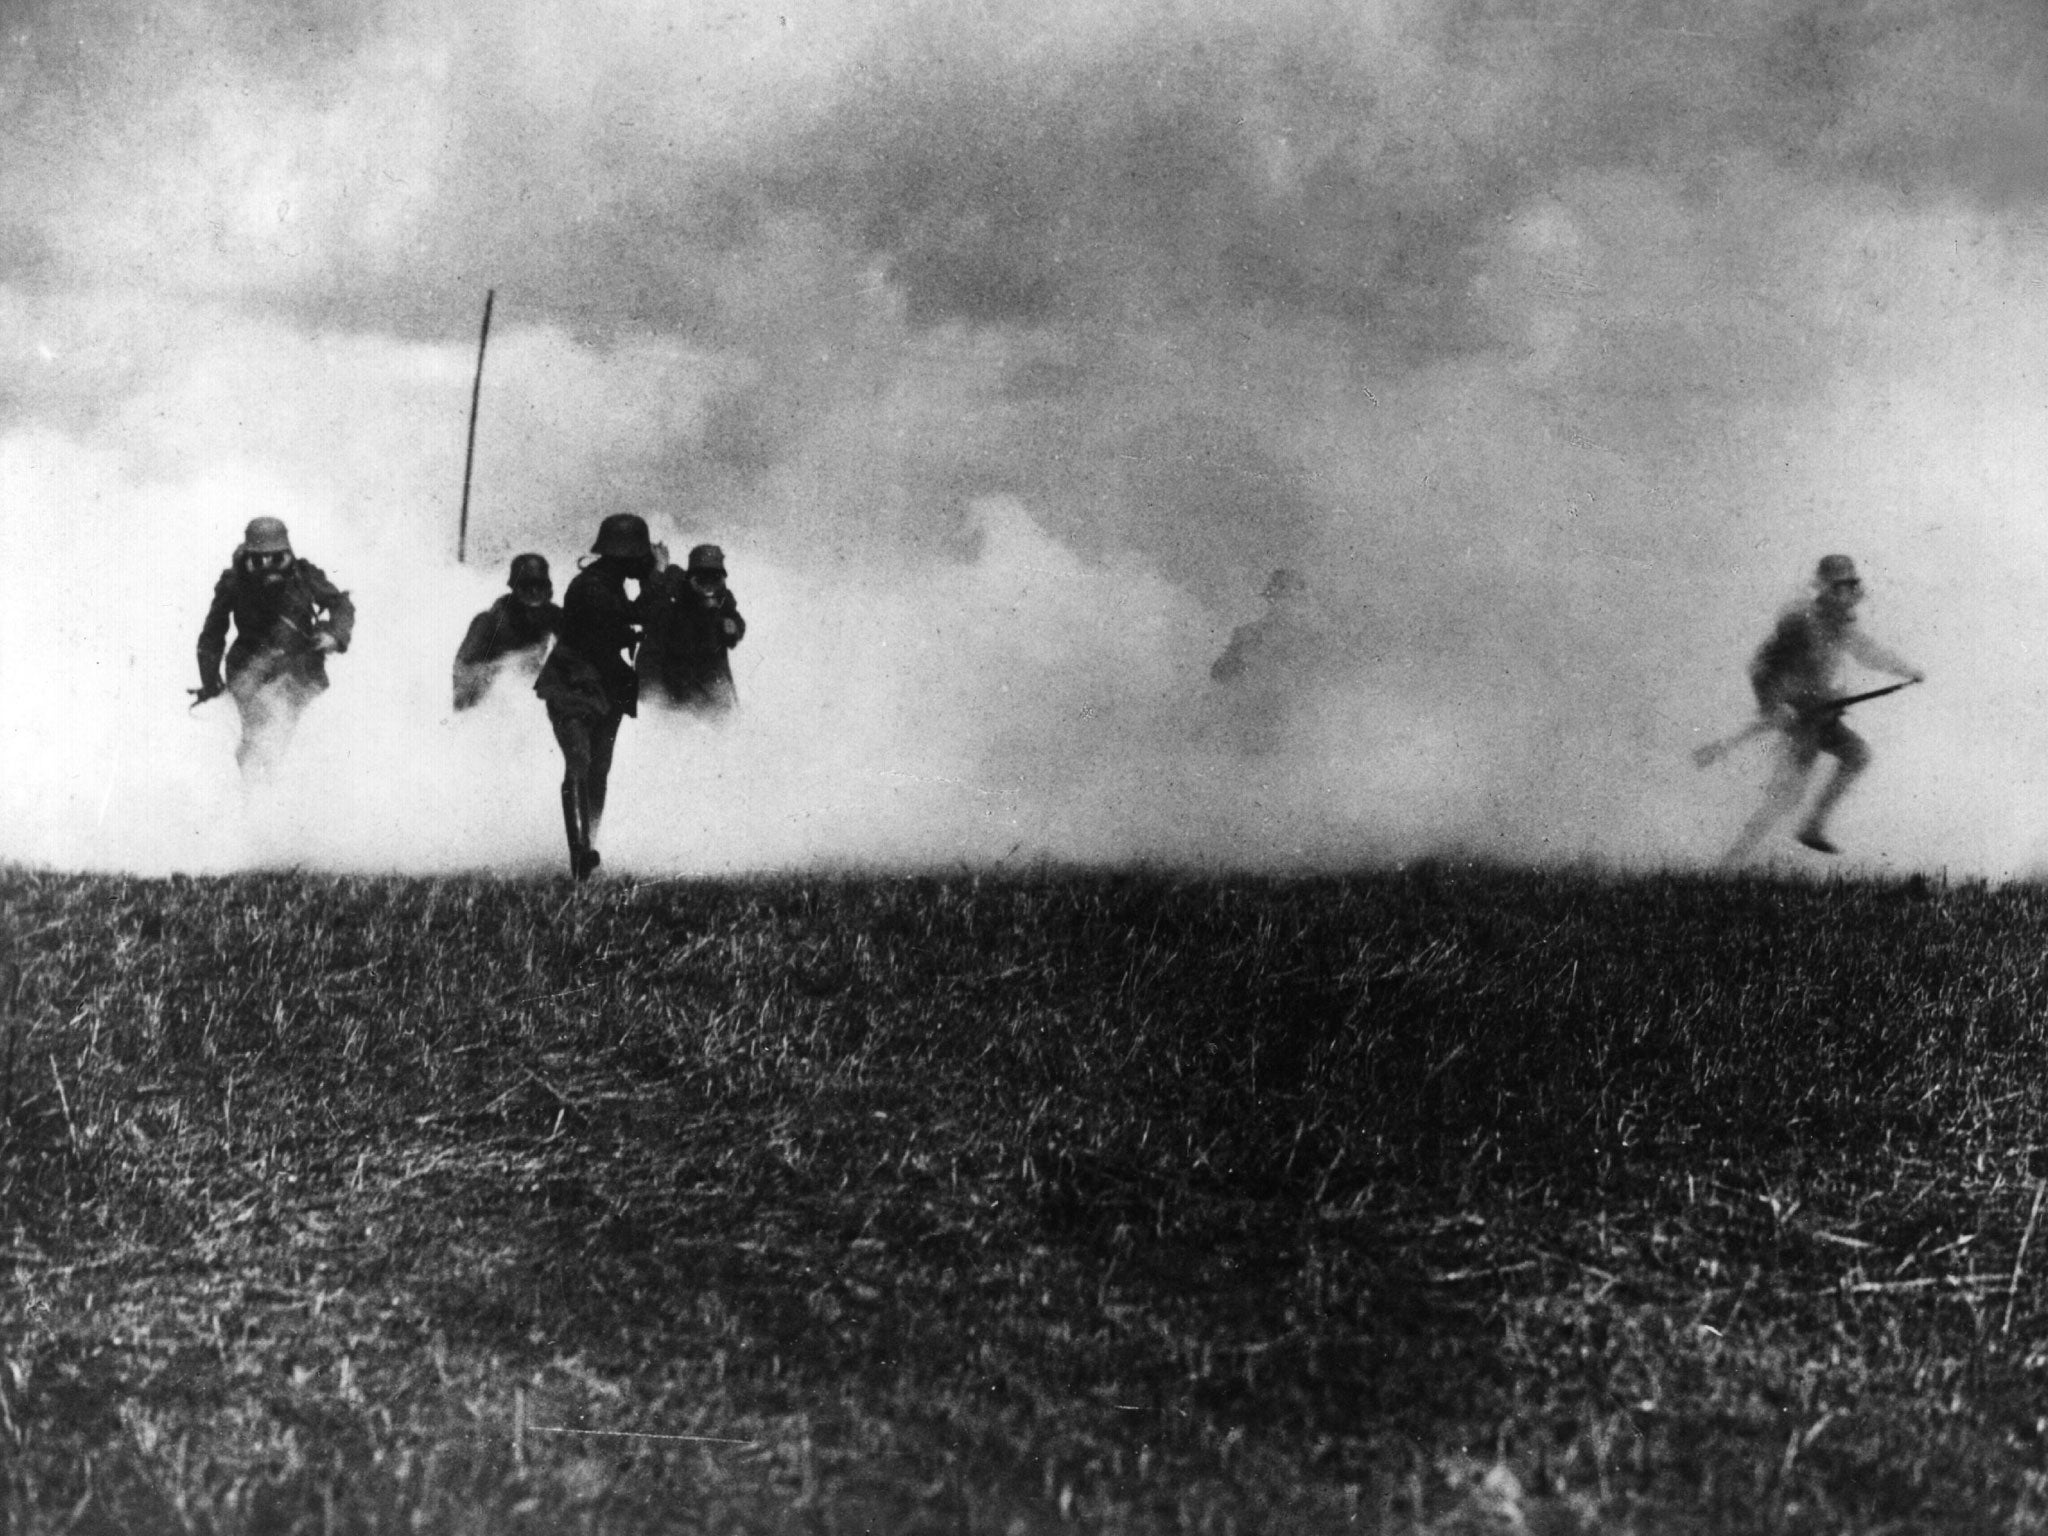 an analysis of the casualties and the destructive weapons used in world war i What weapons from world war ii were most effective and least effective what was the most effective casualty producing weapon in the first world war.